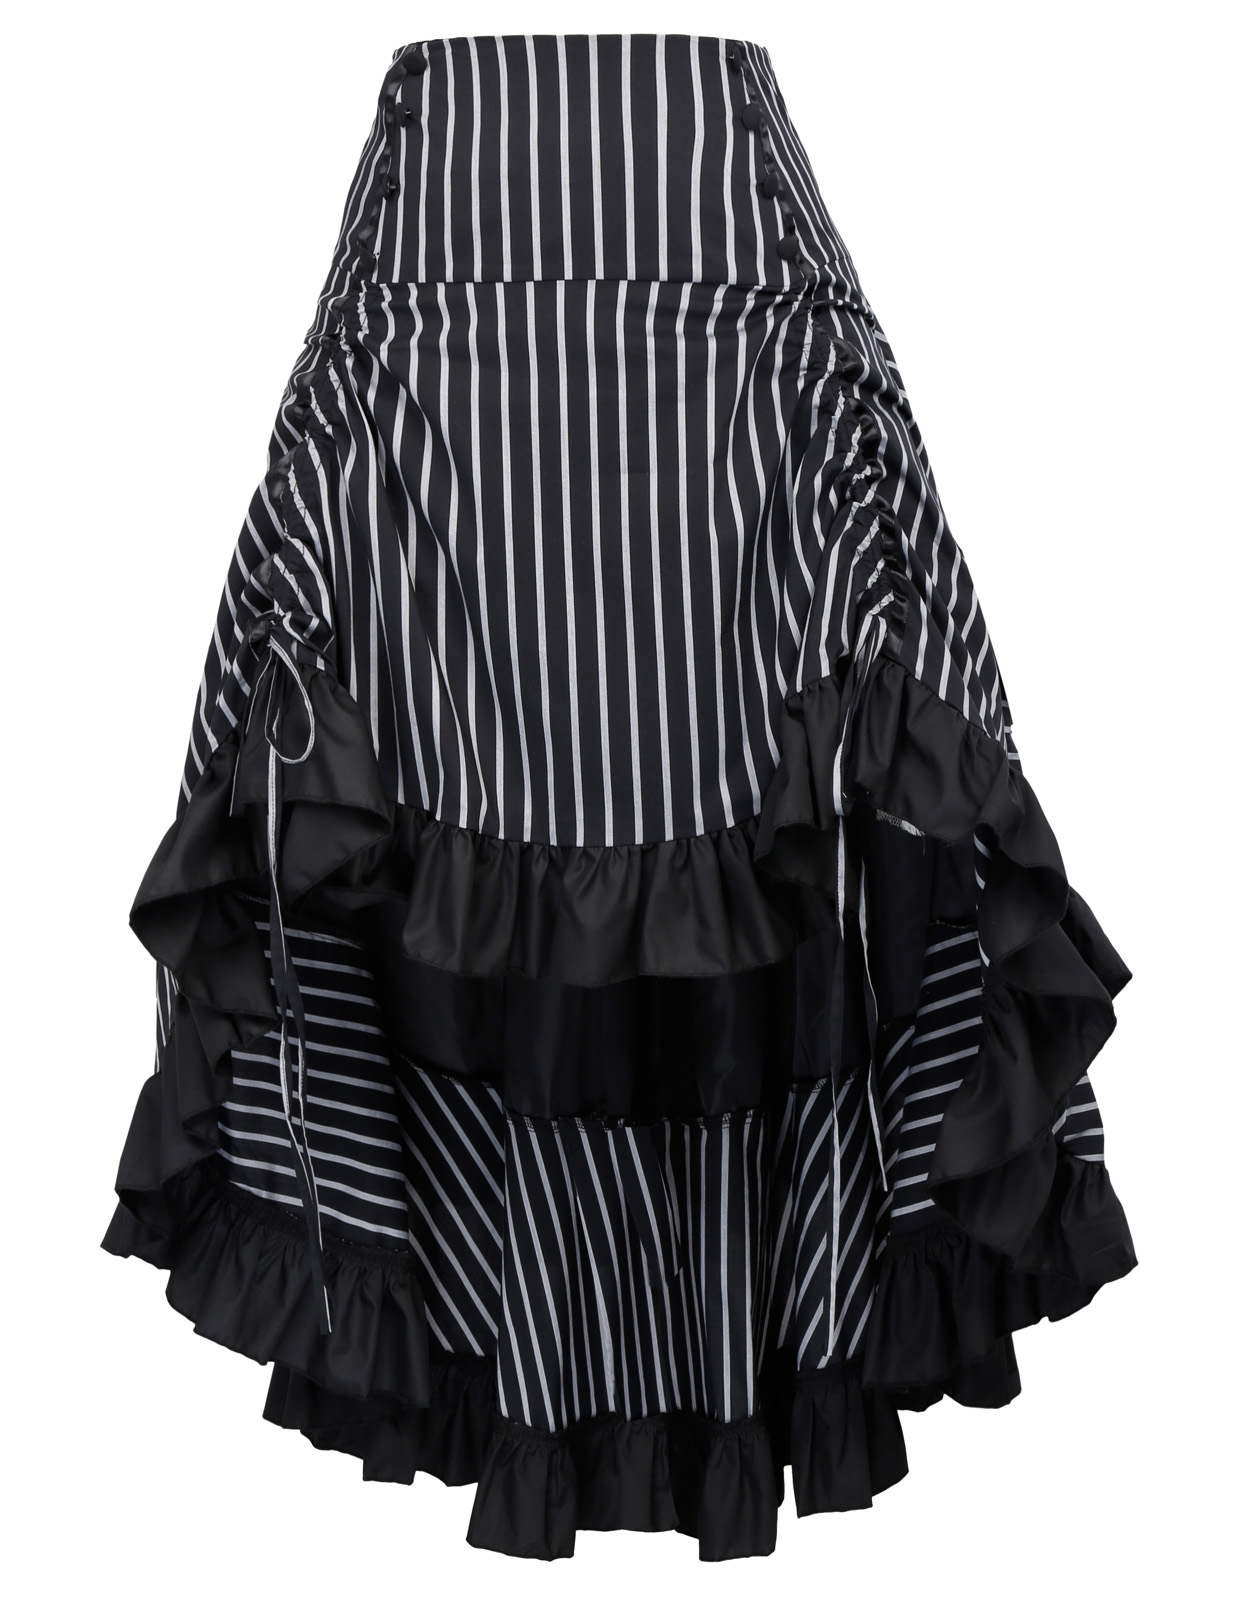 plus size women vintage skirt summer casual Striped Gathered Steampunk High-Low retro Skirt